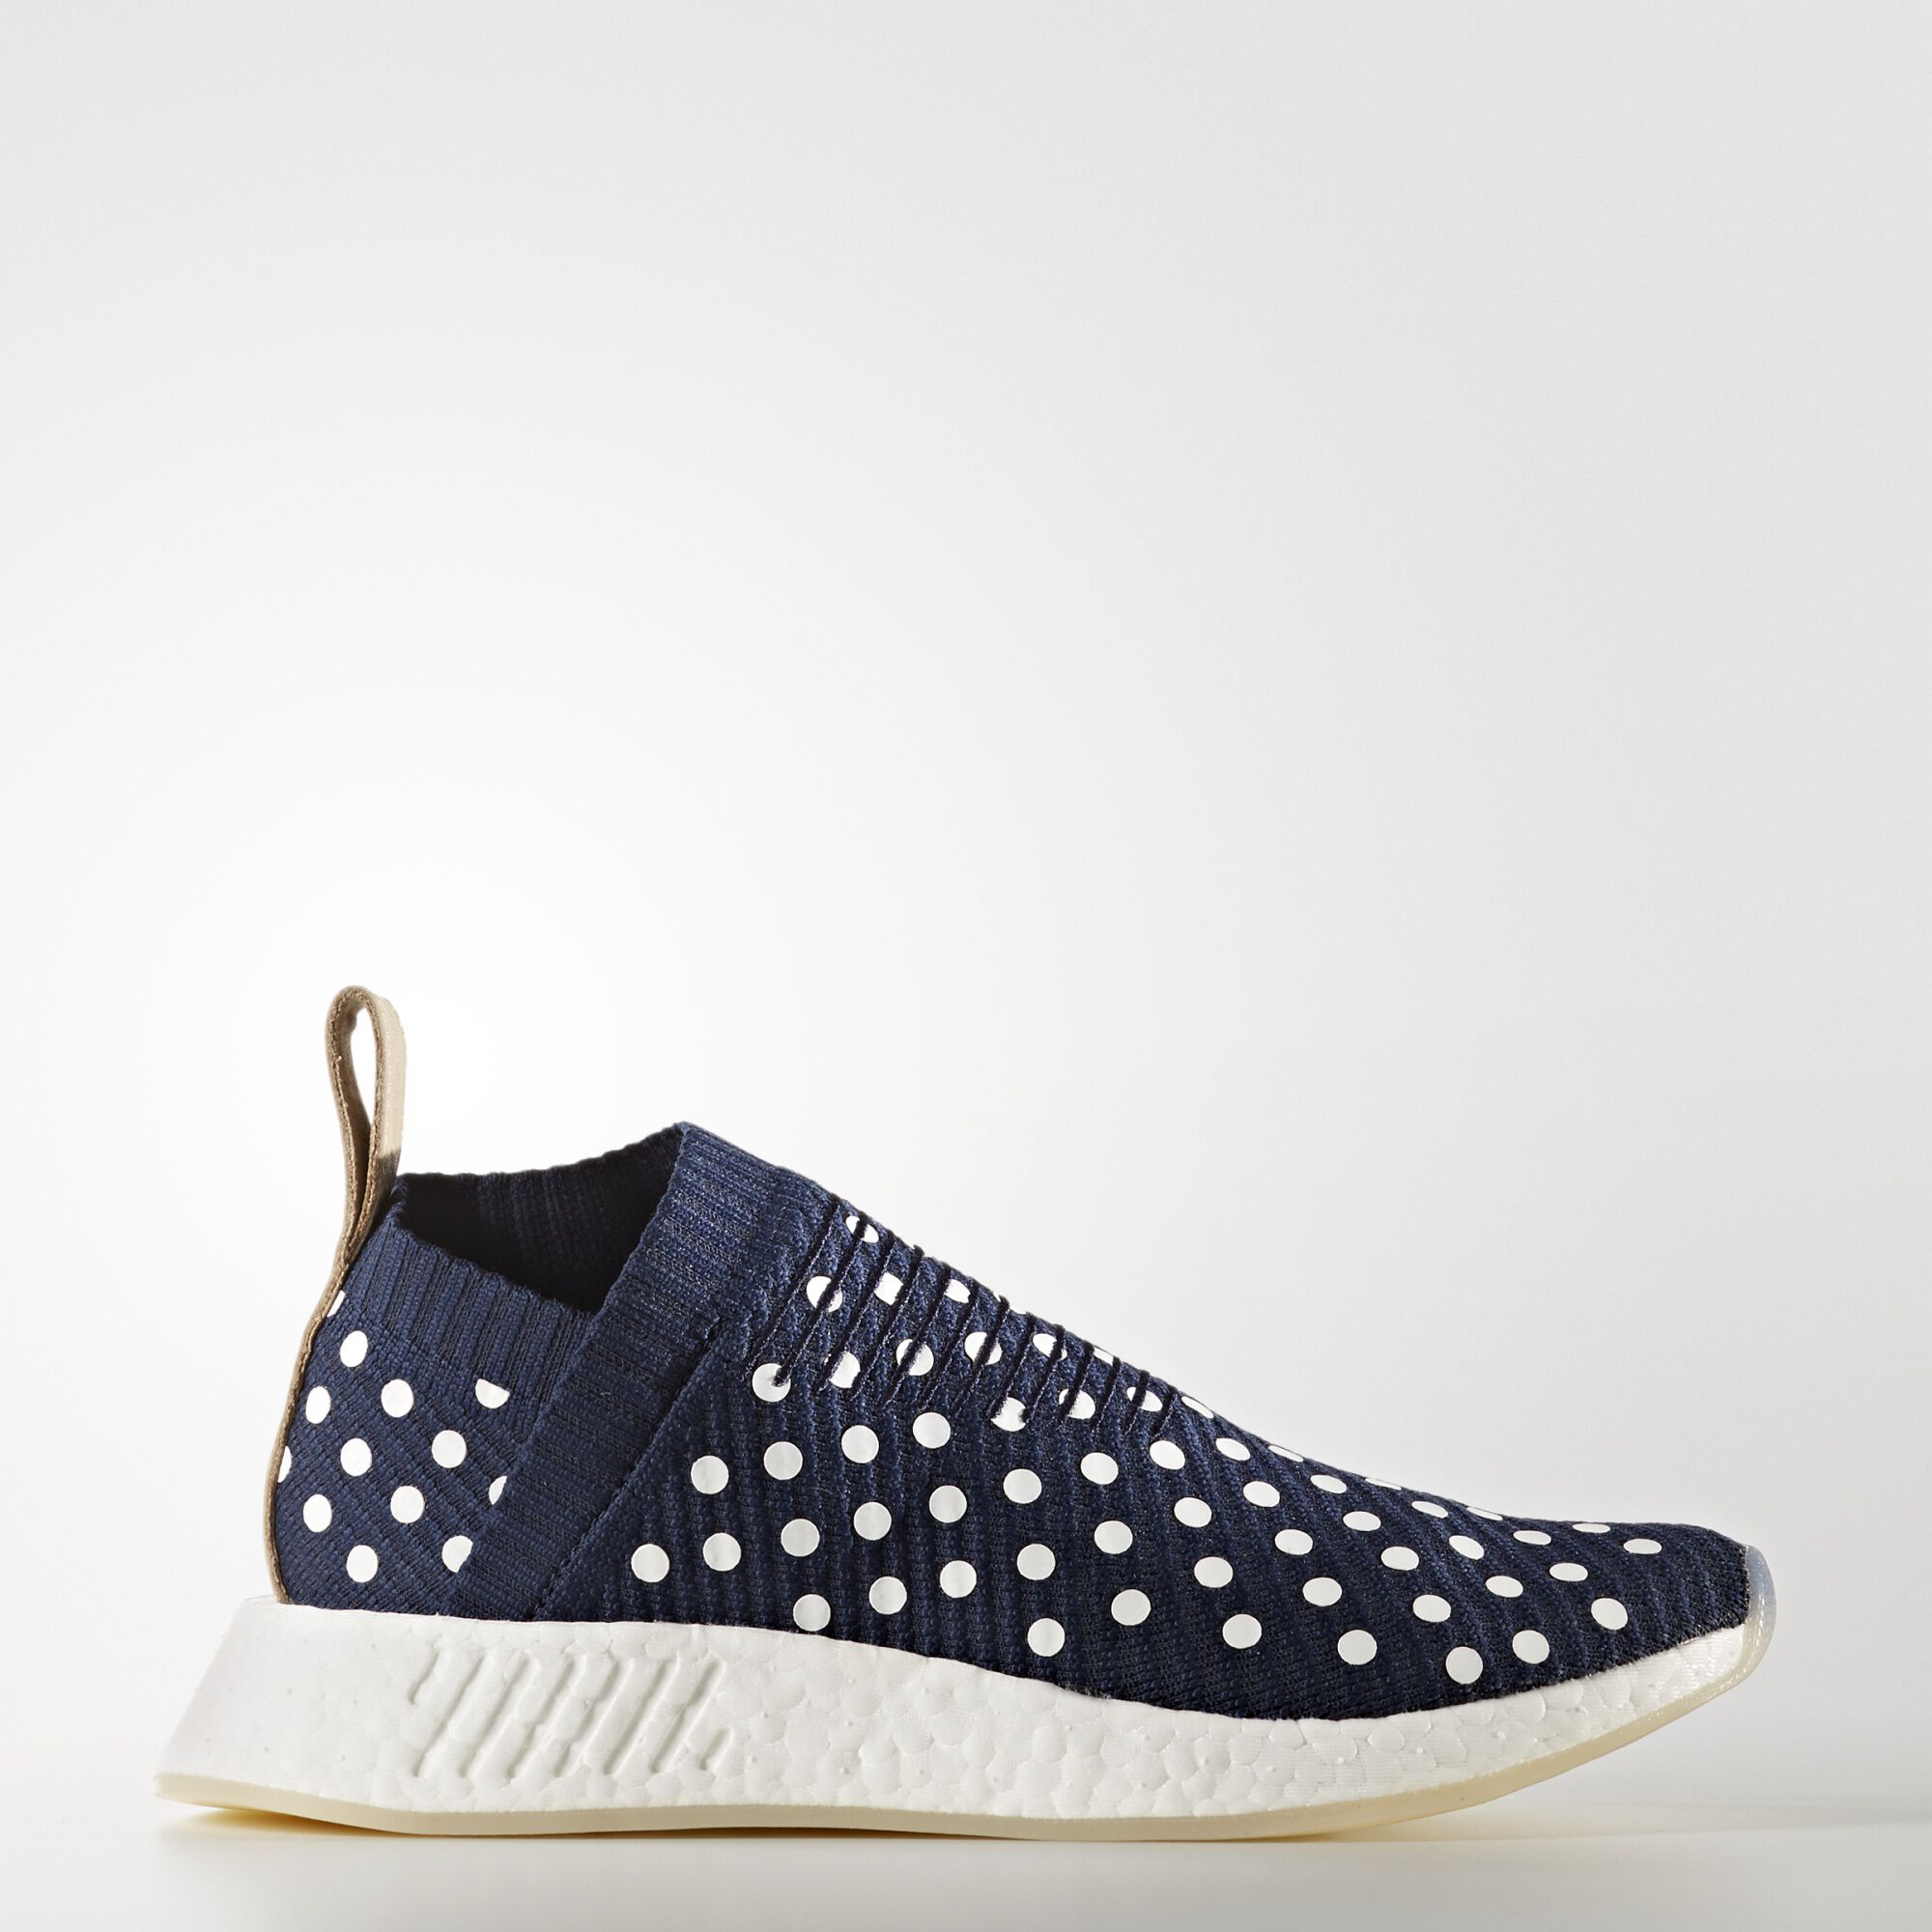 a567f0b0b137 adidas shoes women on sale   OFF39% Discounts